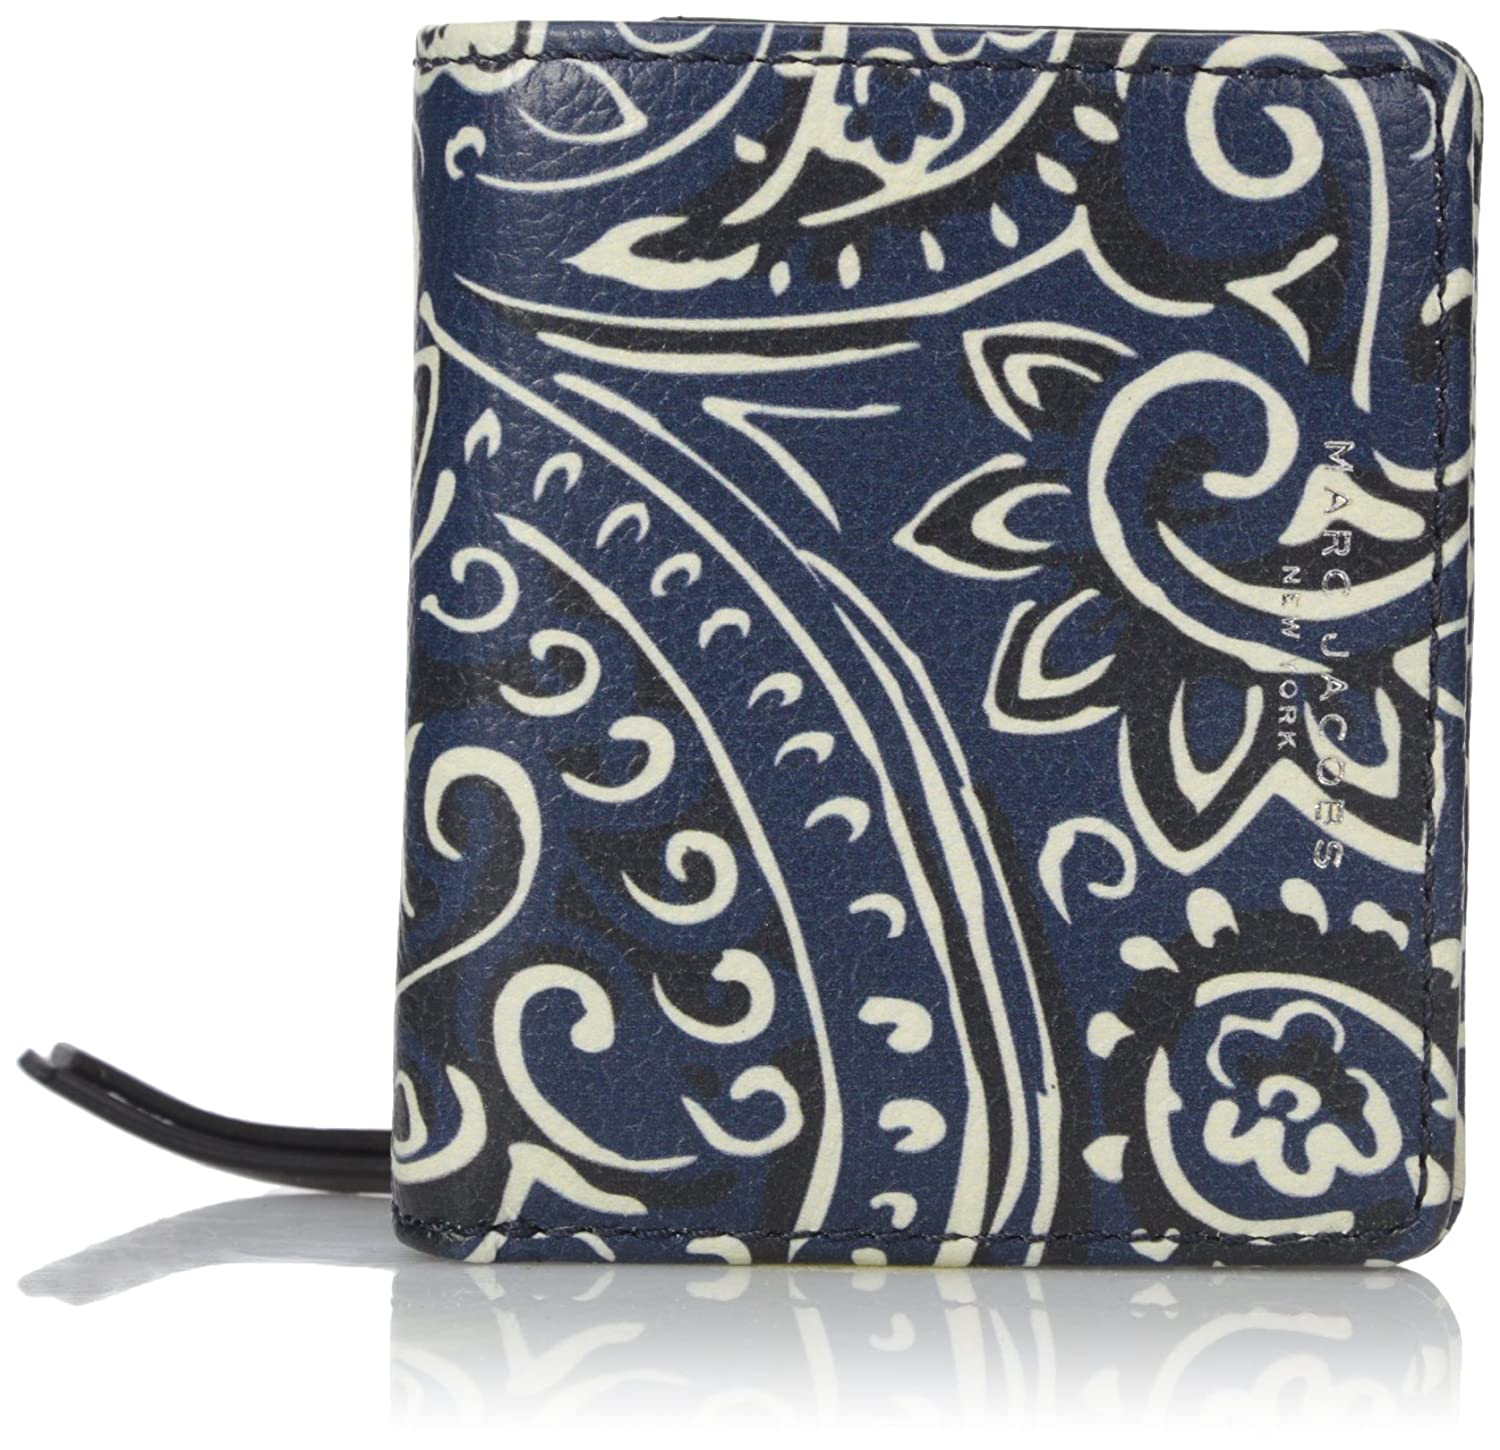 Marc Jacobs Recruit Paisley Open Face Billfold Wallet, Rail Blue Multi, One Size